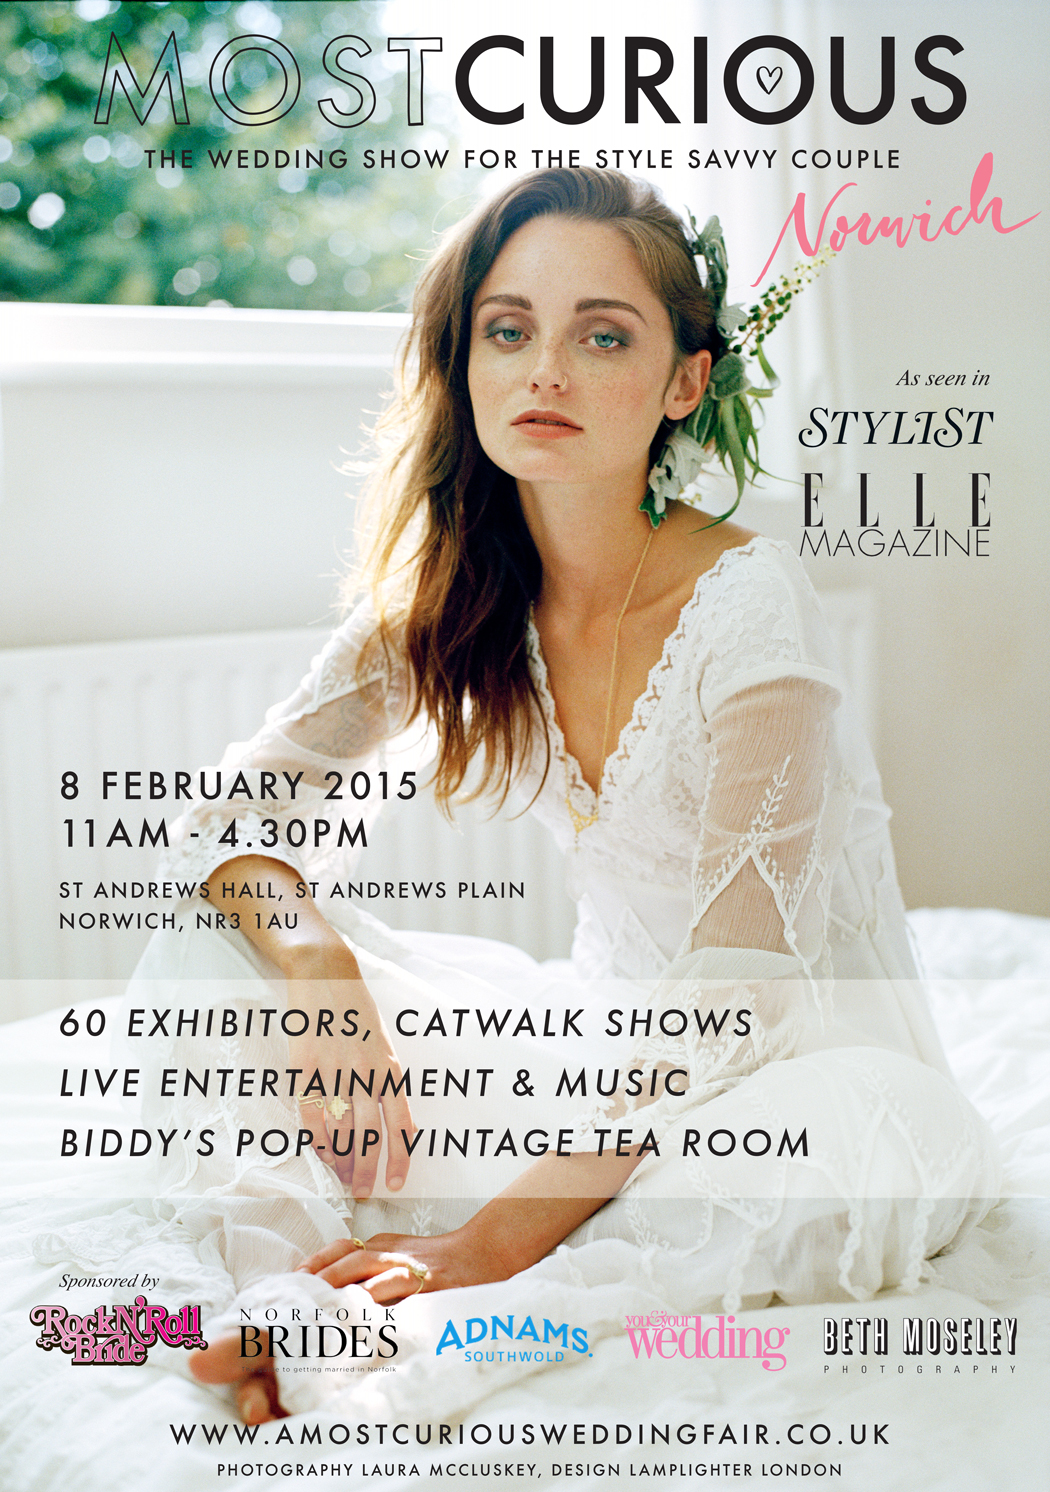 wedding-fair-london-norwich-most-curious-the-wedding-show-for-the-style-savvy-couple-coco-wedding-venues-norwich-poster-1050